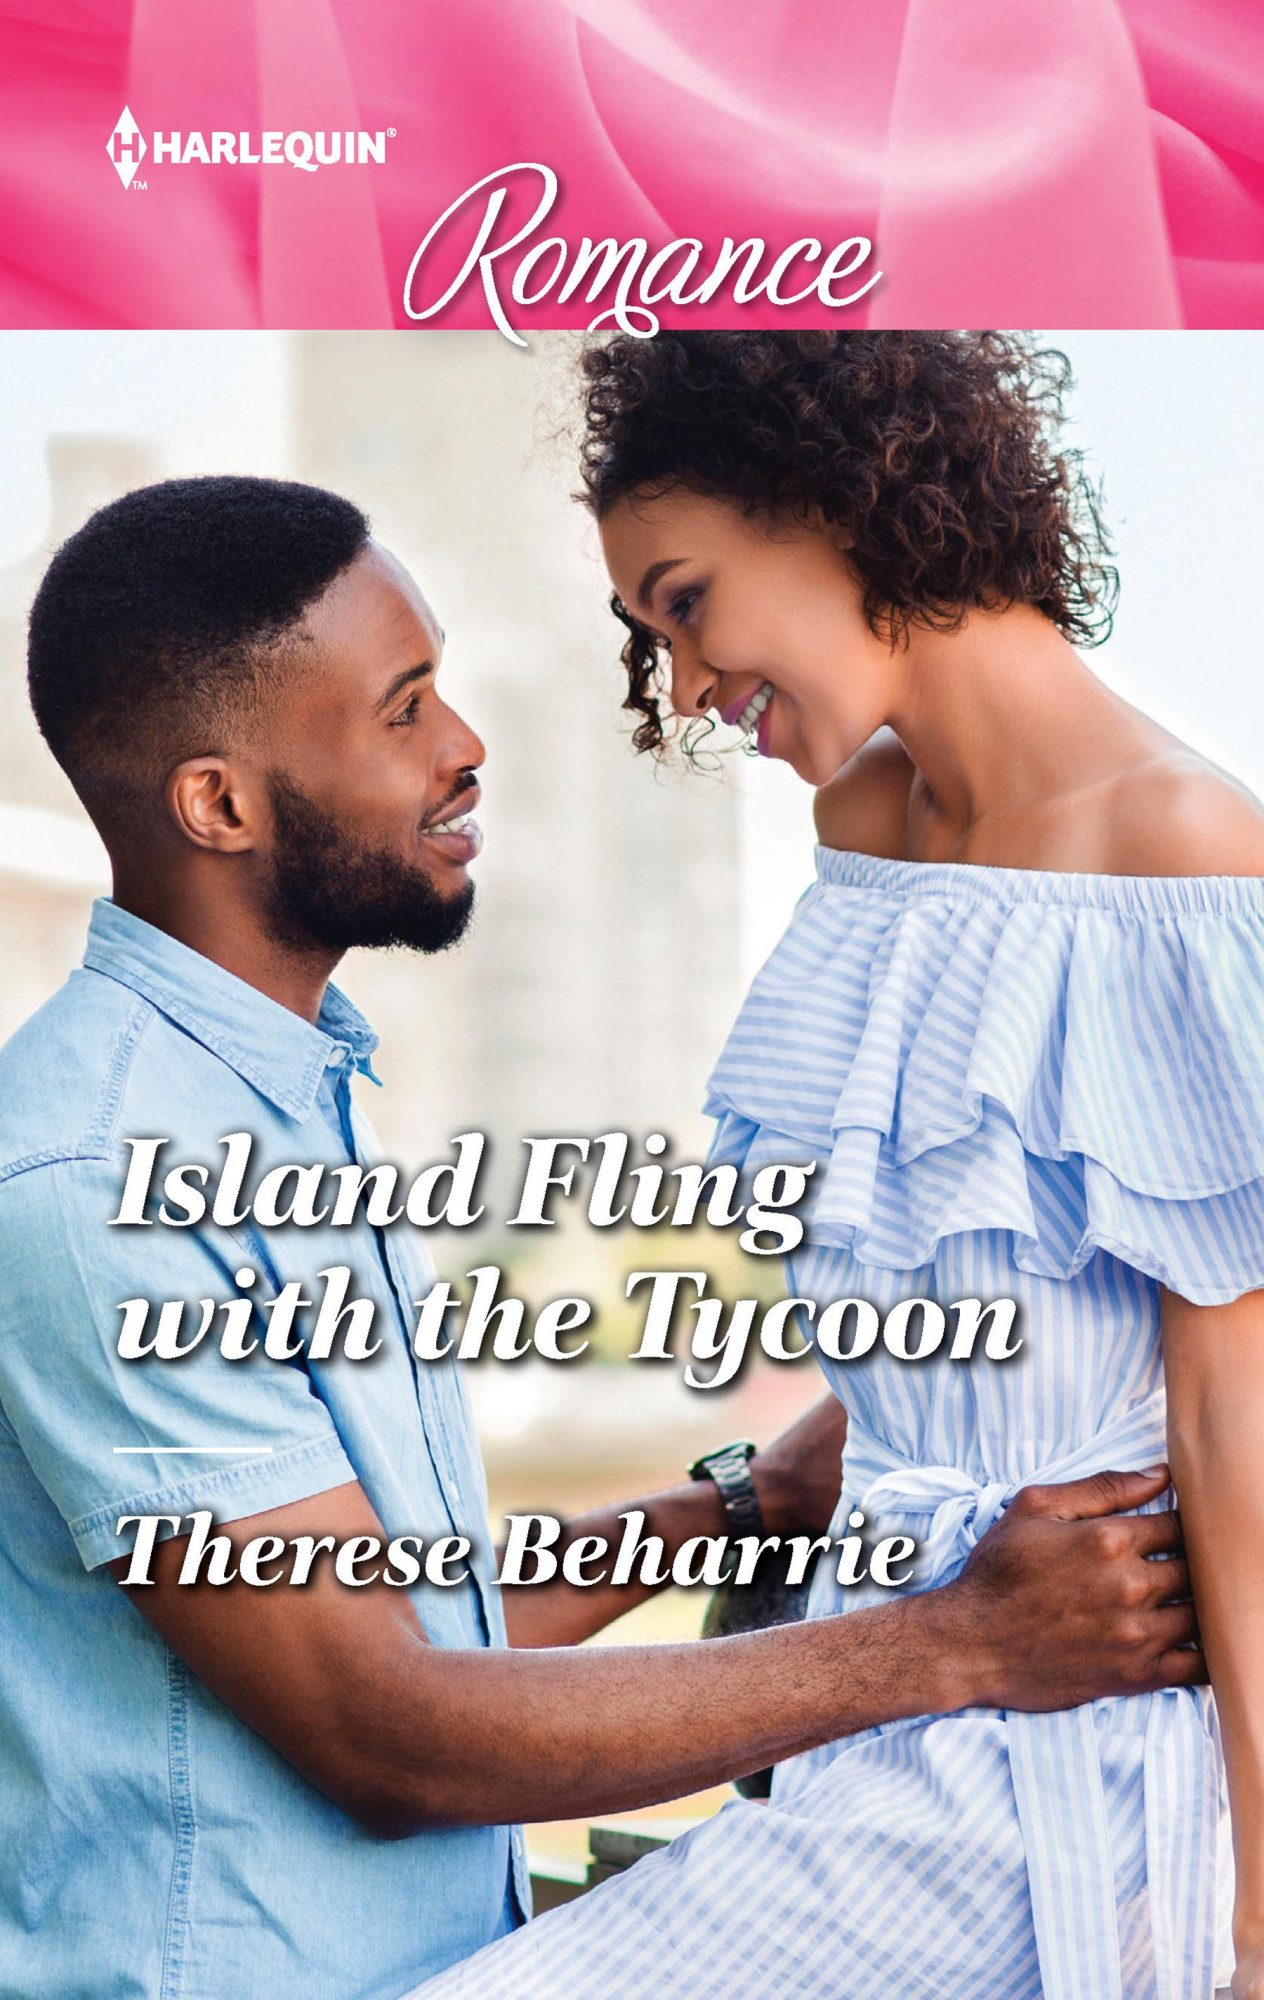 Island Fling with the Tycoon by Therese Beharrie